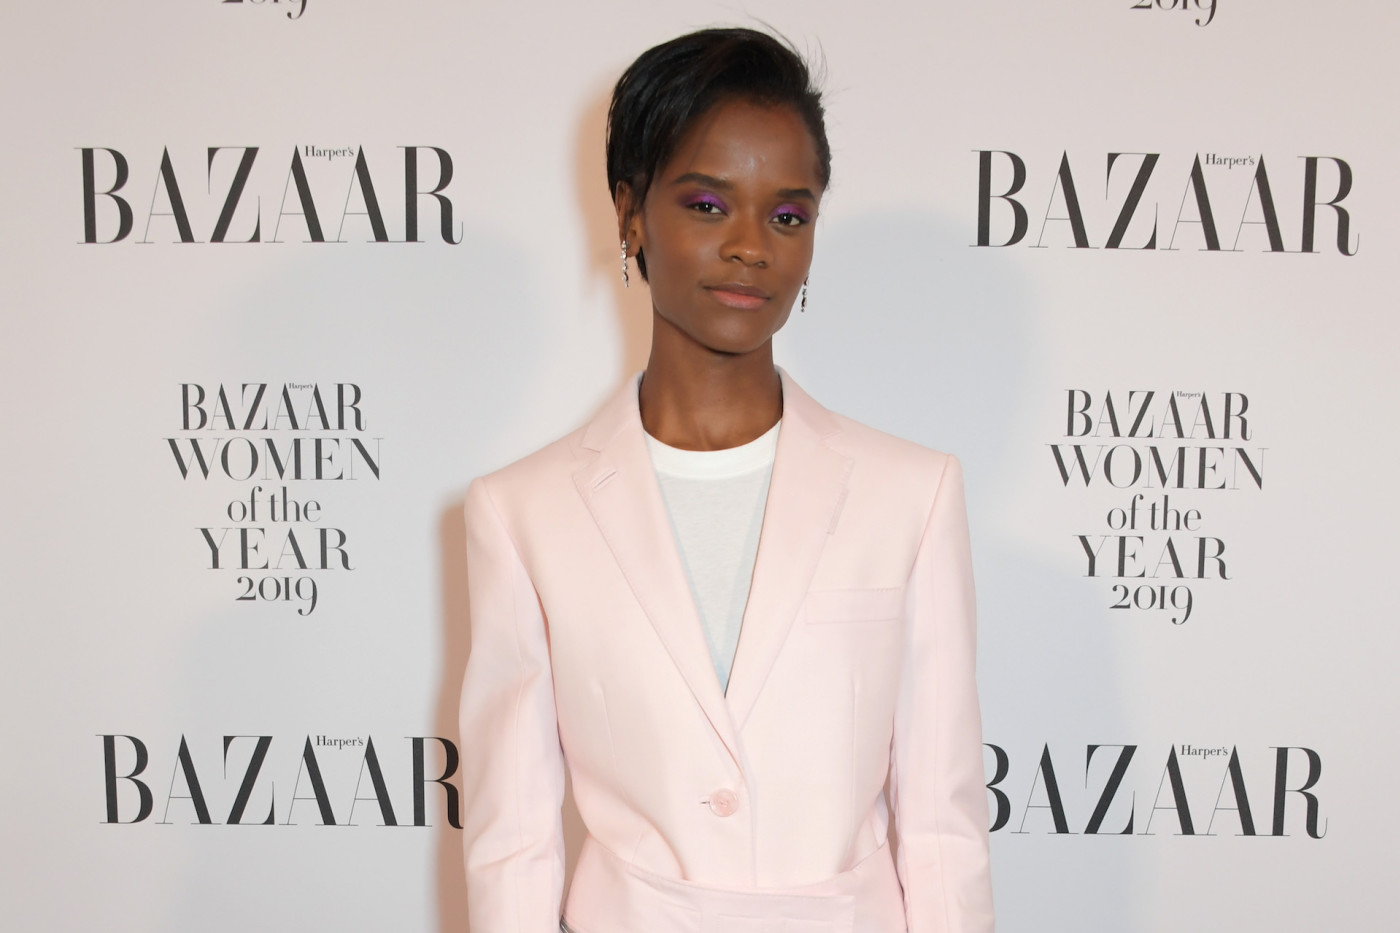 Letitia Wright attends the Harper's Bazaar Women of the Year Awards 2019.